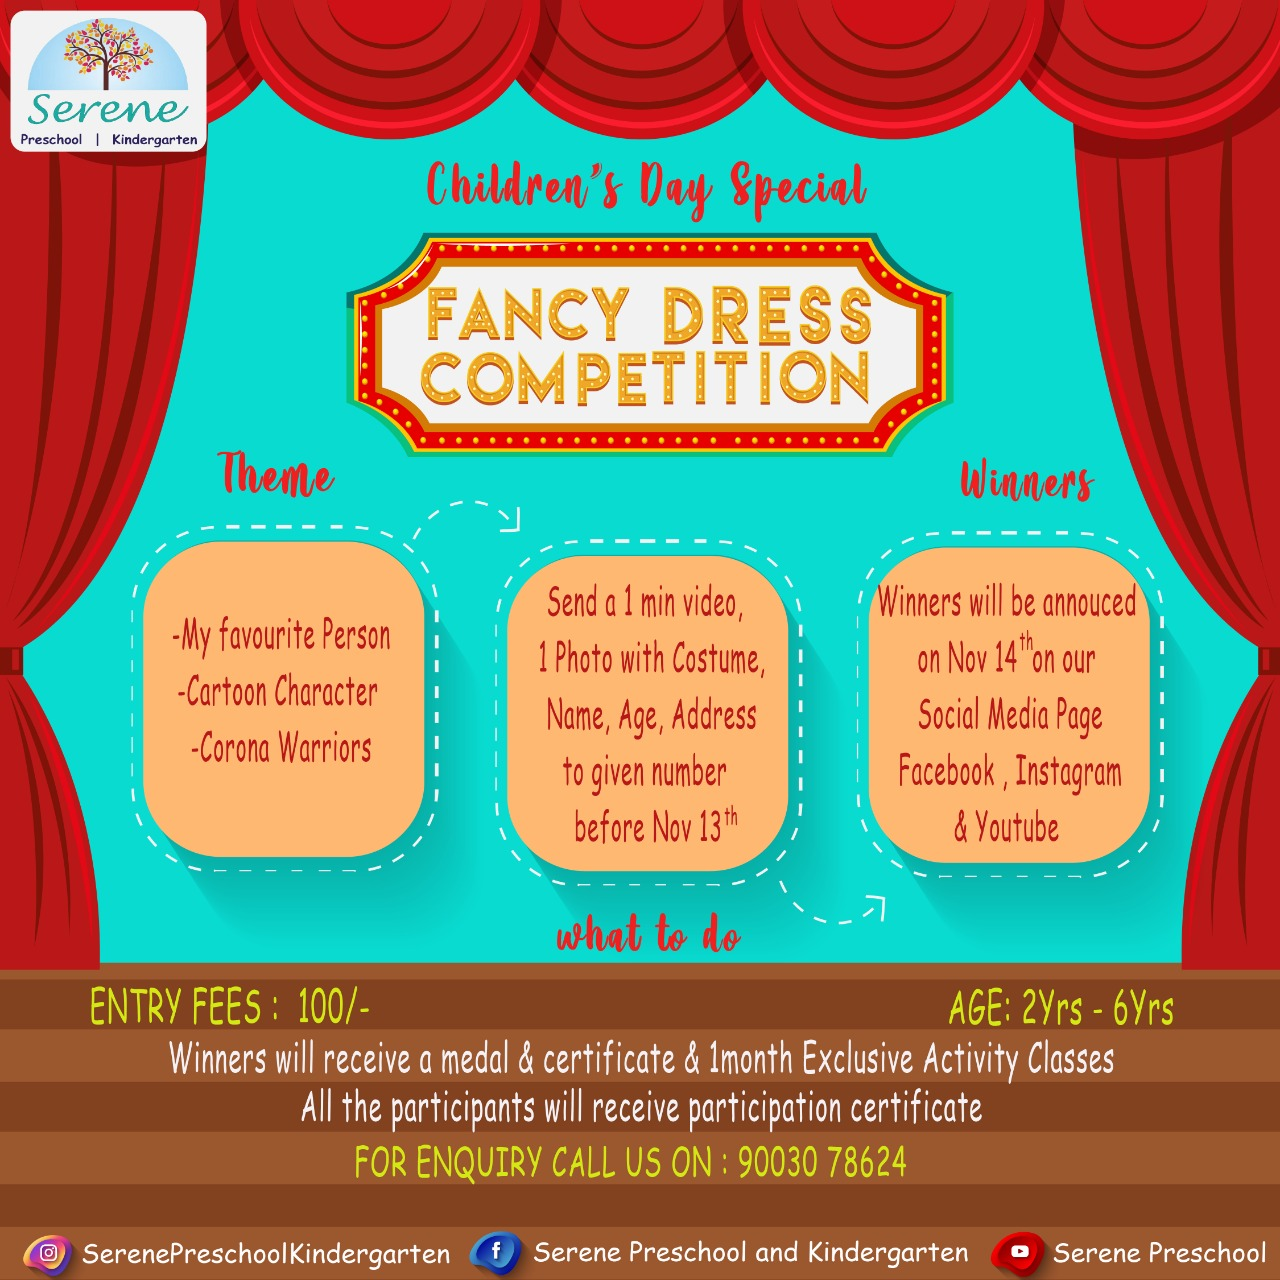 Serene's Fancy Dress Competition